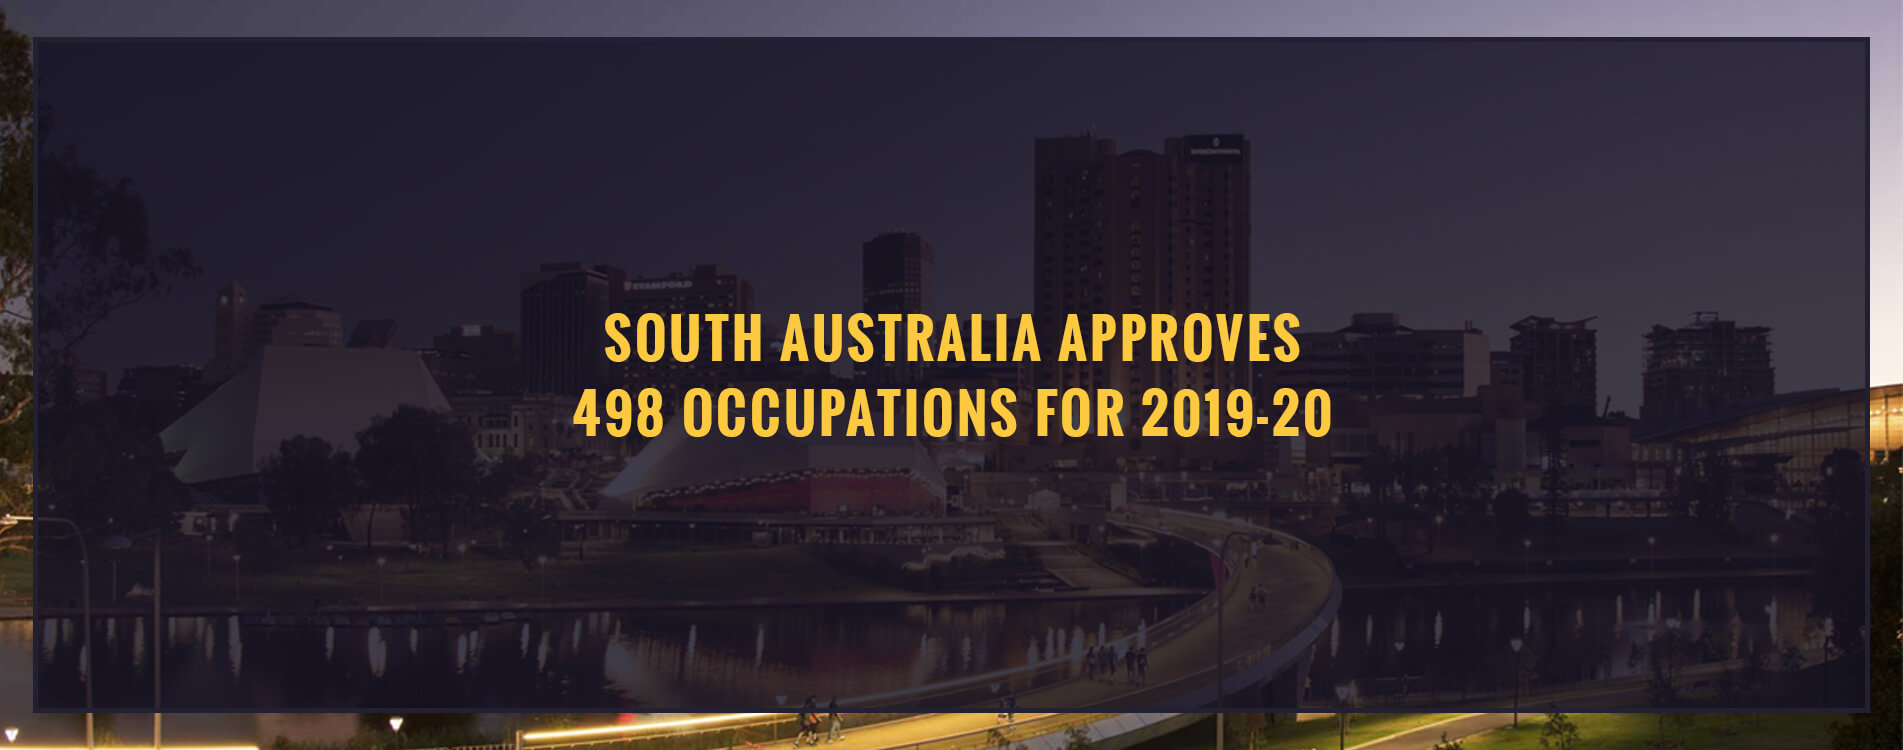 Update: South Australia Approves 498 Occupations for 2019-20